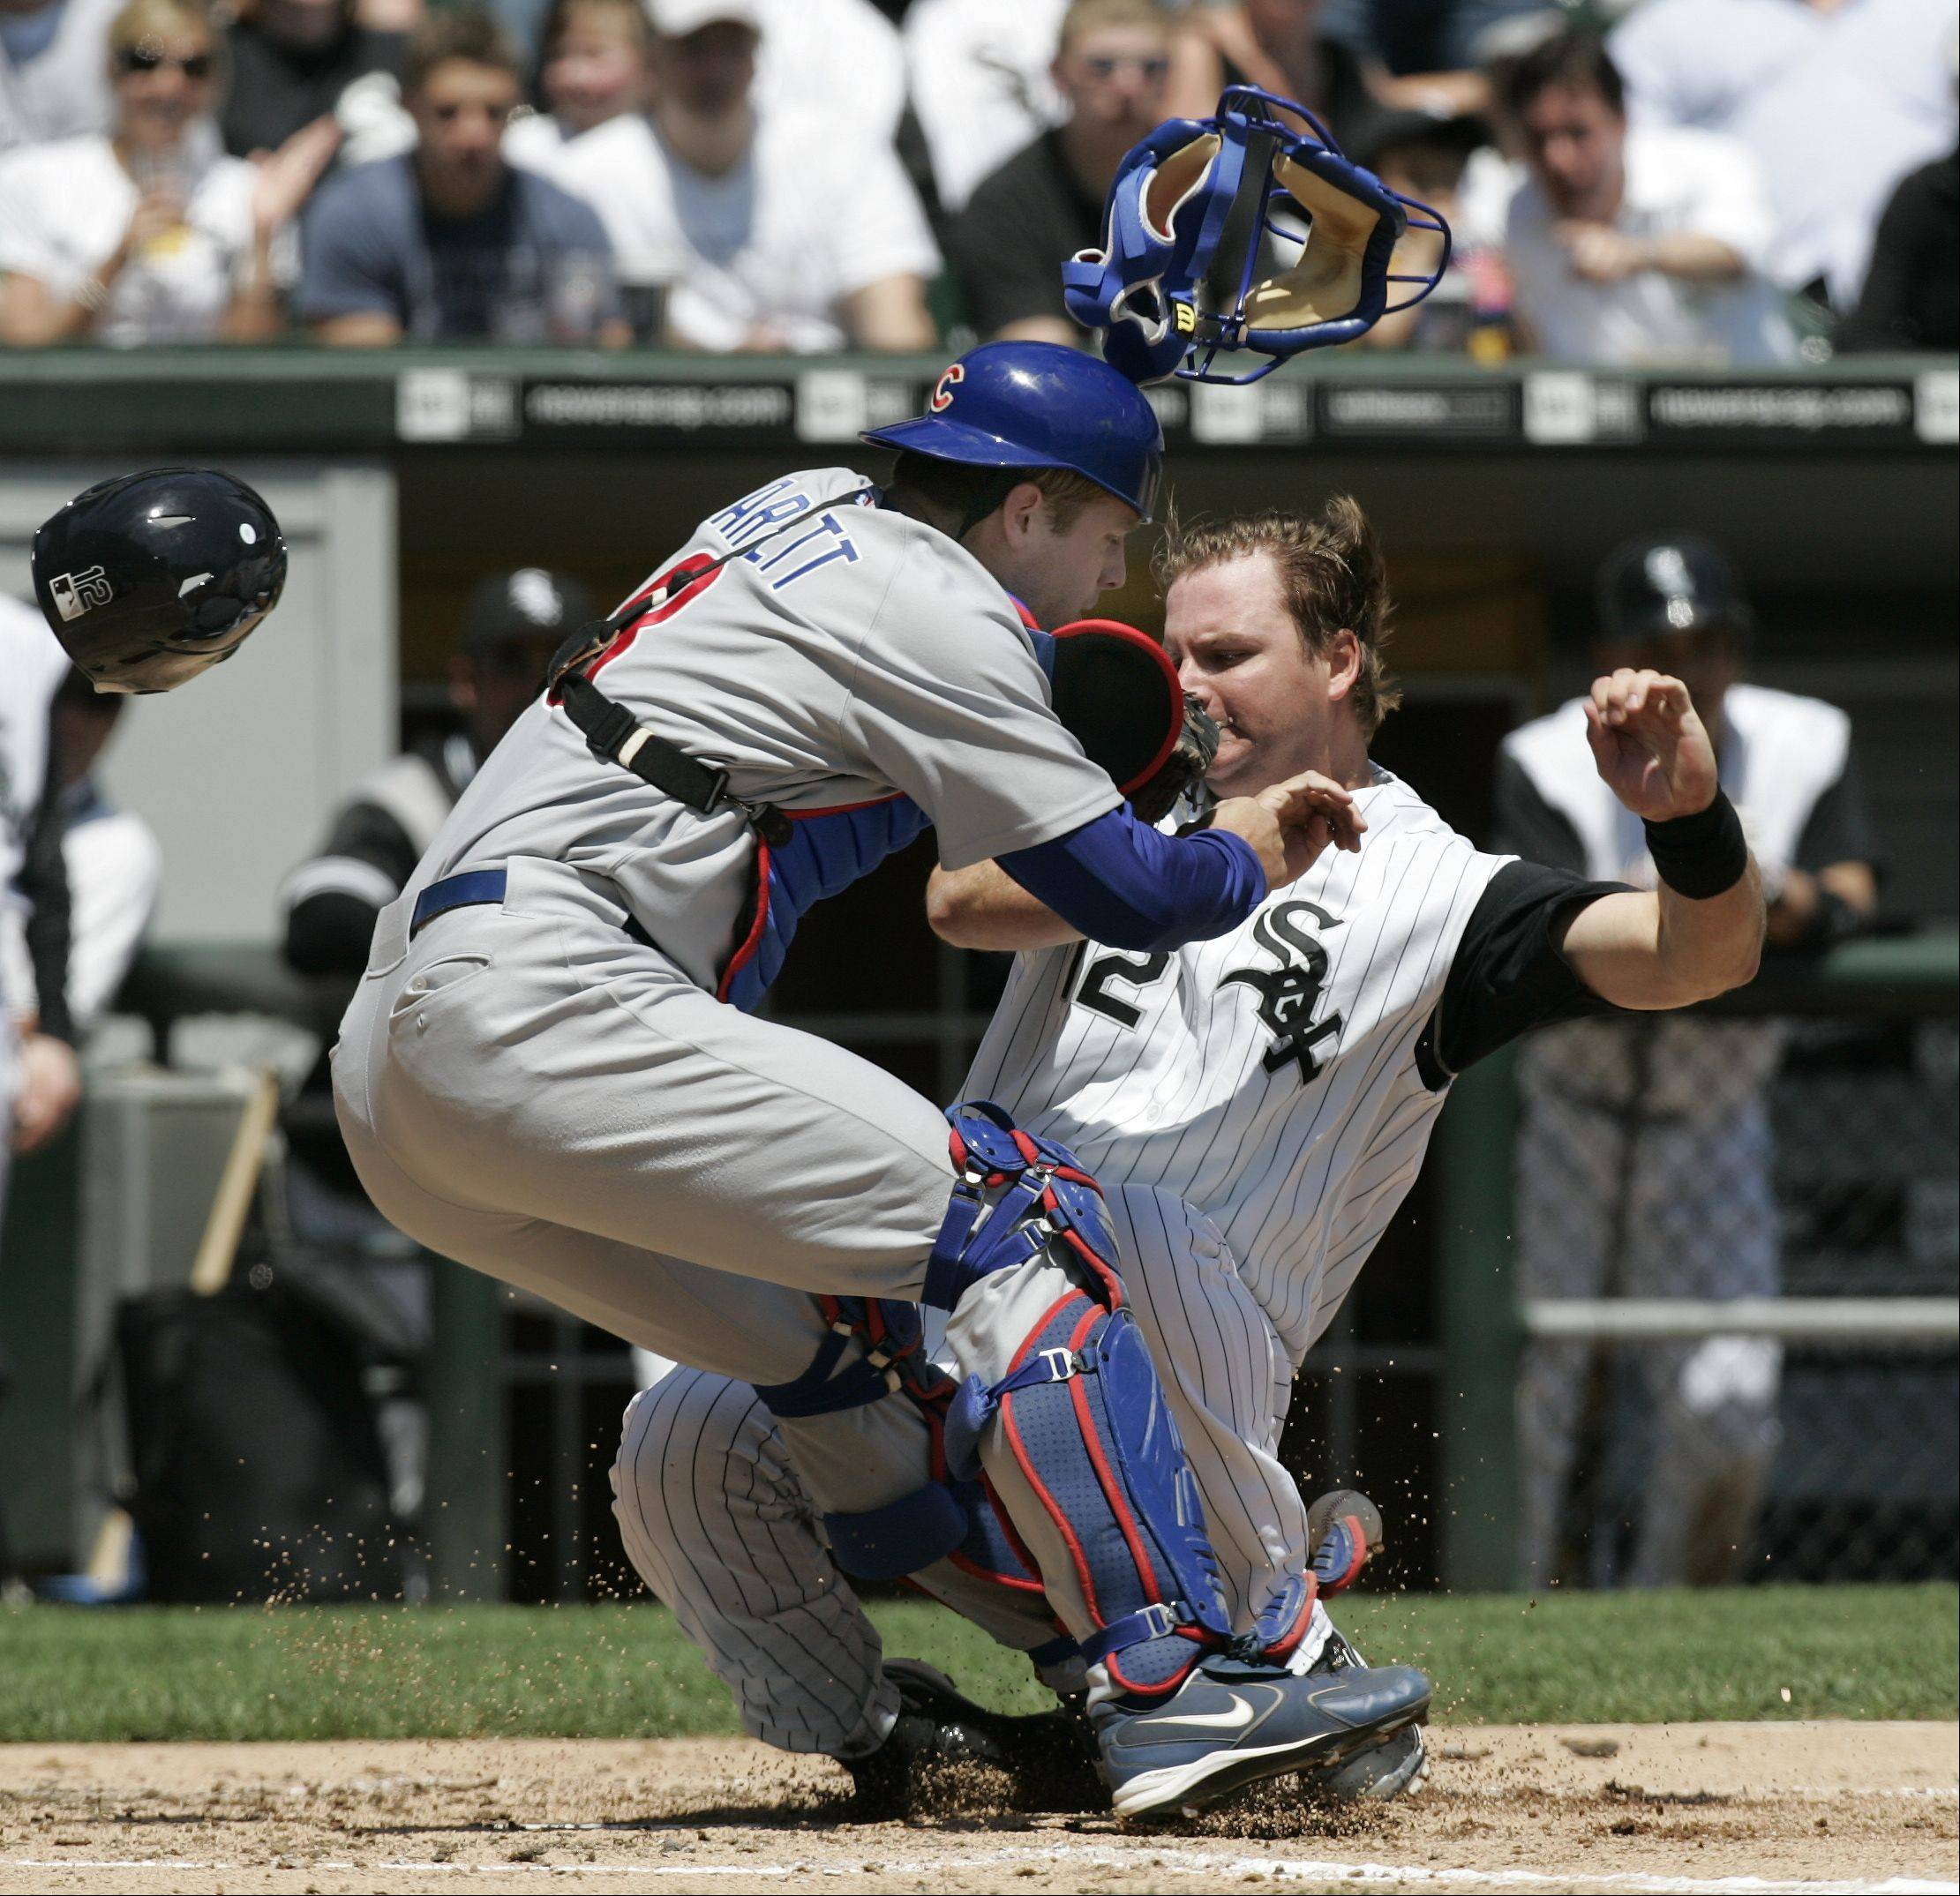 Sox A.J. Pierzynski collides with Cubs Catcher Michael Barrett in the 2nd inning, Game Two Chicago White Sox Vs Chicago Cubs at U.S. Cellular Field in Chicago. May 20, 2006.